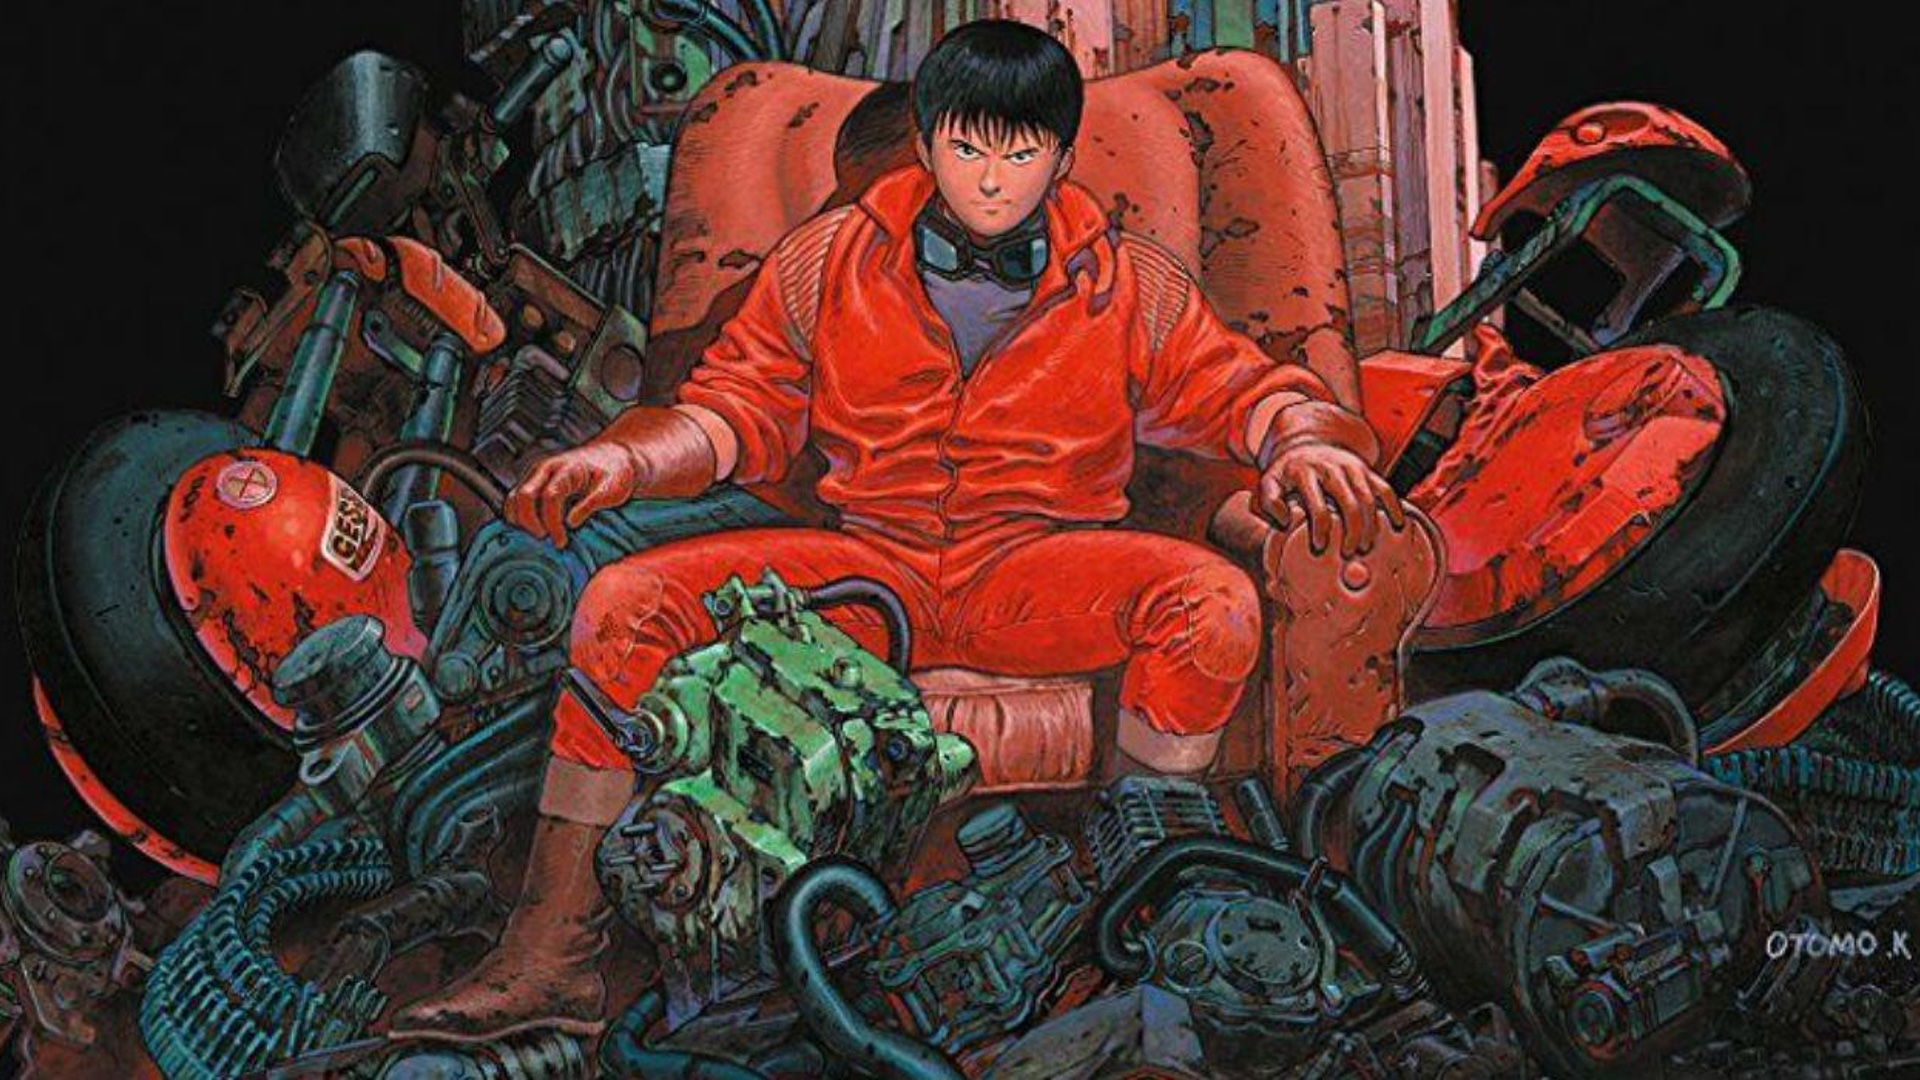 taika-waititis-akira-will-be-released-summer-of-2021-and-neo-tokyo-setting-is-confirmed-social.jpg